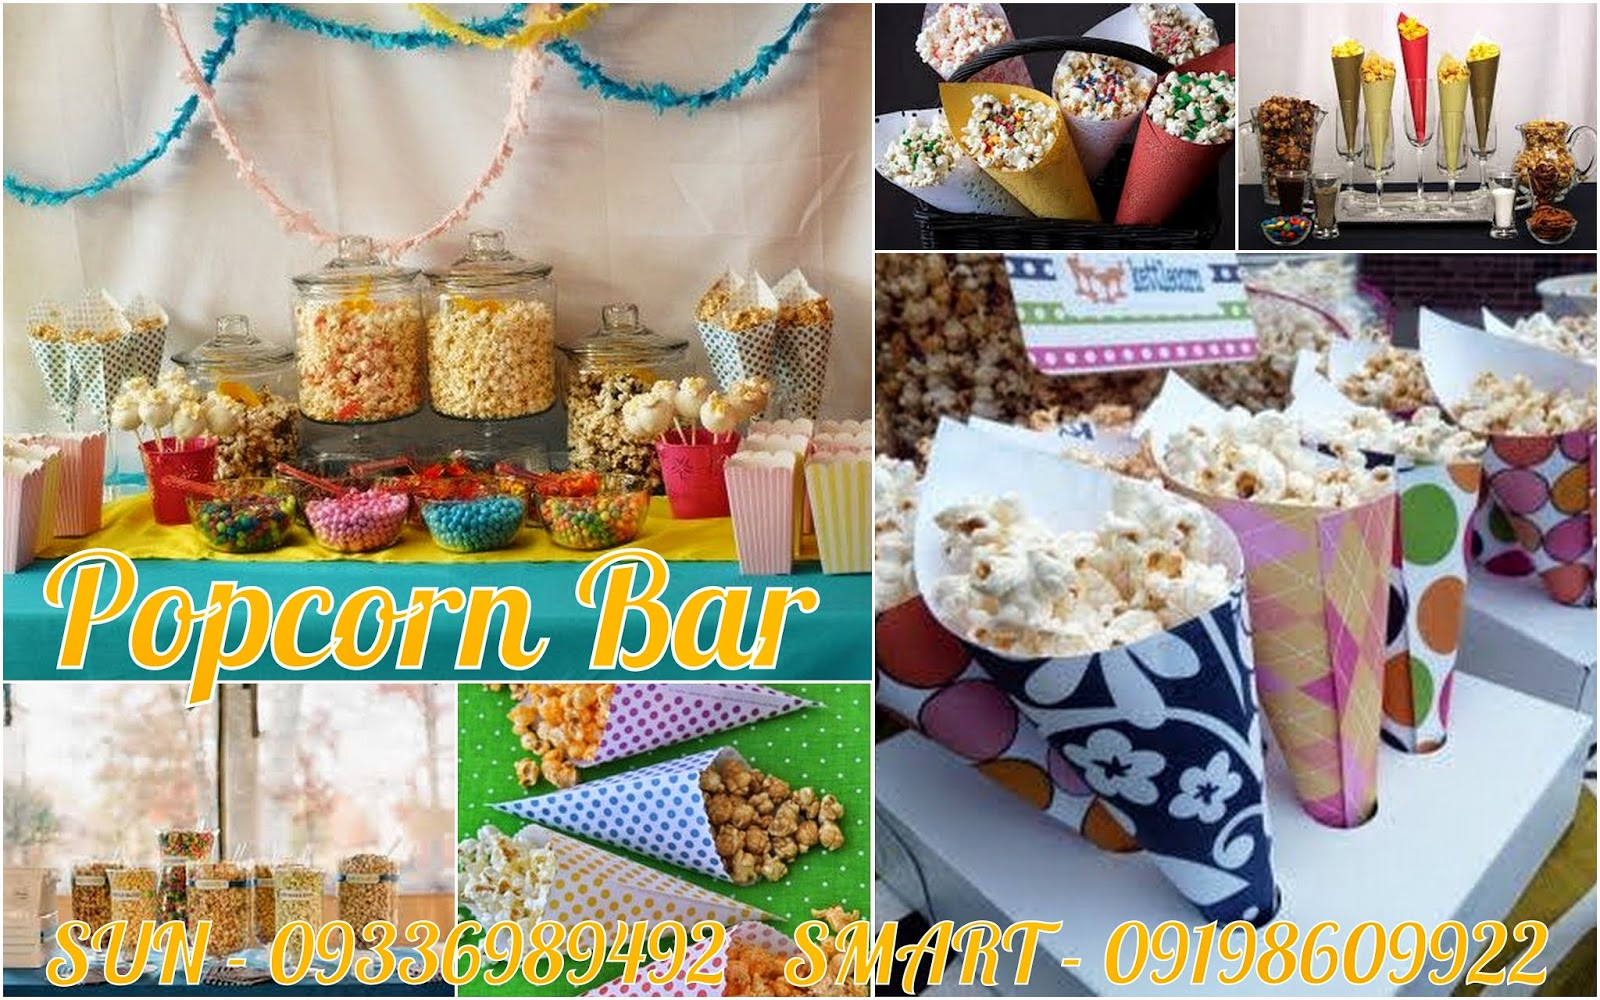 Consider A Popcorn Bar For Your Next Party Or Event And Personalize It With  Creative Mix Ins, Toppings And Flavors. This Would Be A Fun And Creative  Way To ...